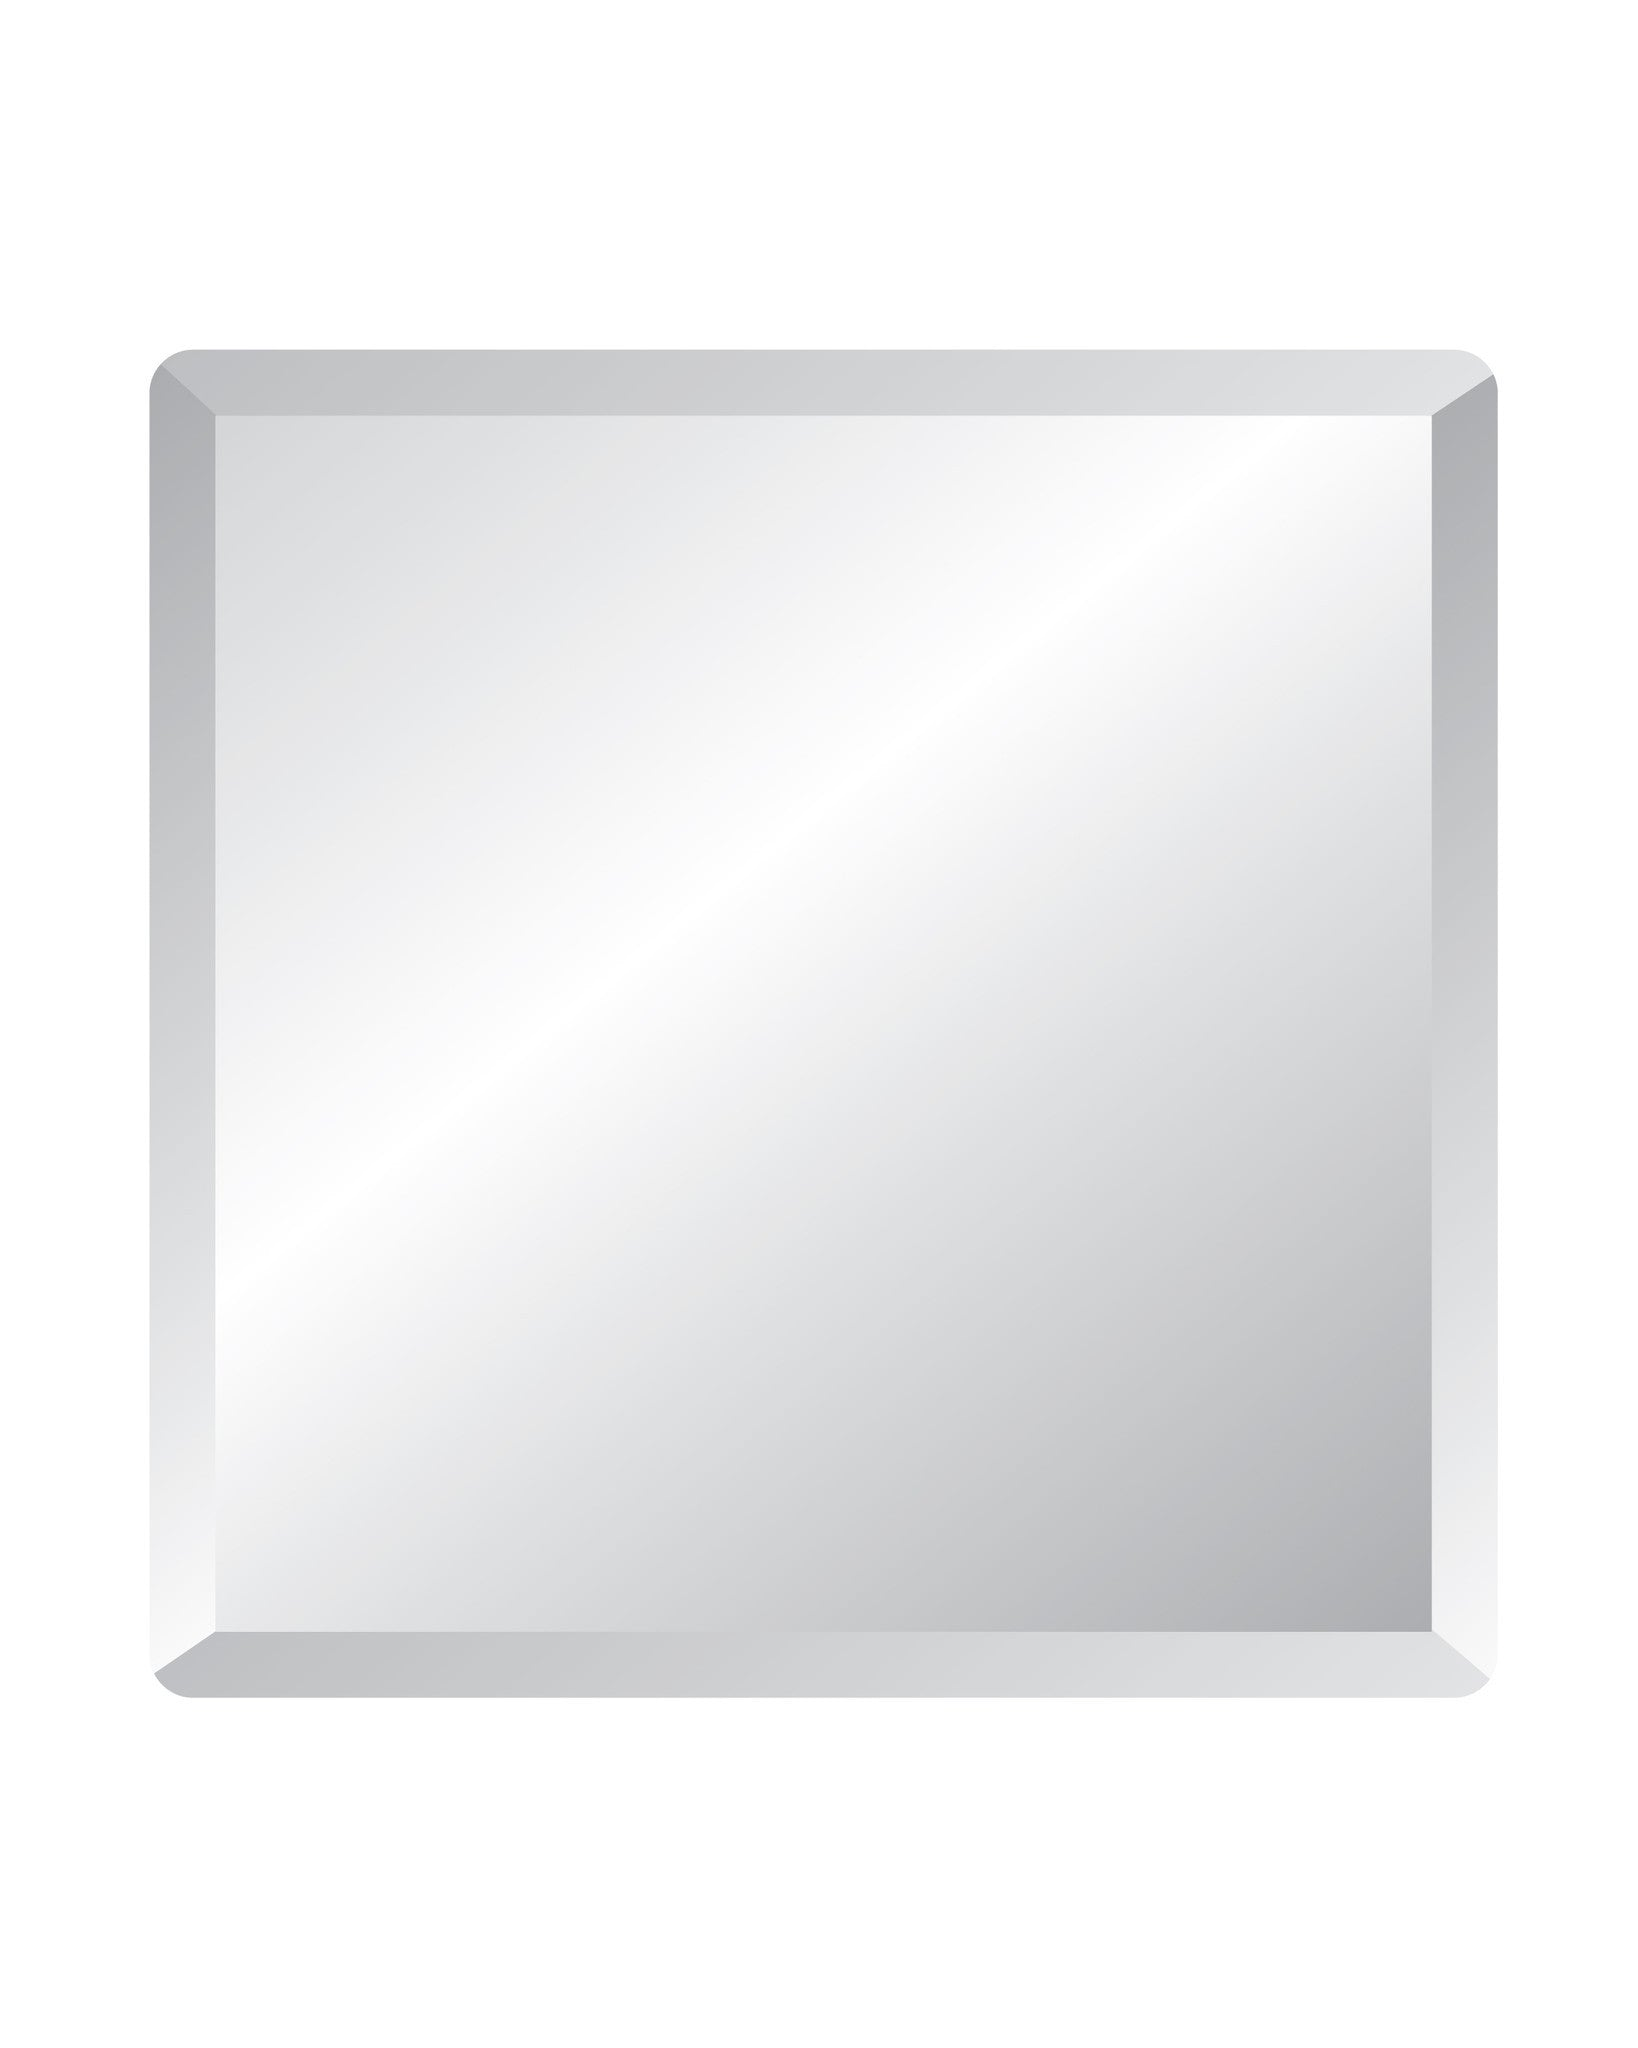 Classy mirrors wall mirrors decorative mirrors bathroom mirrors square frameless mirrors amipublicfo Image collections